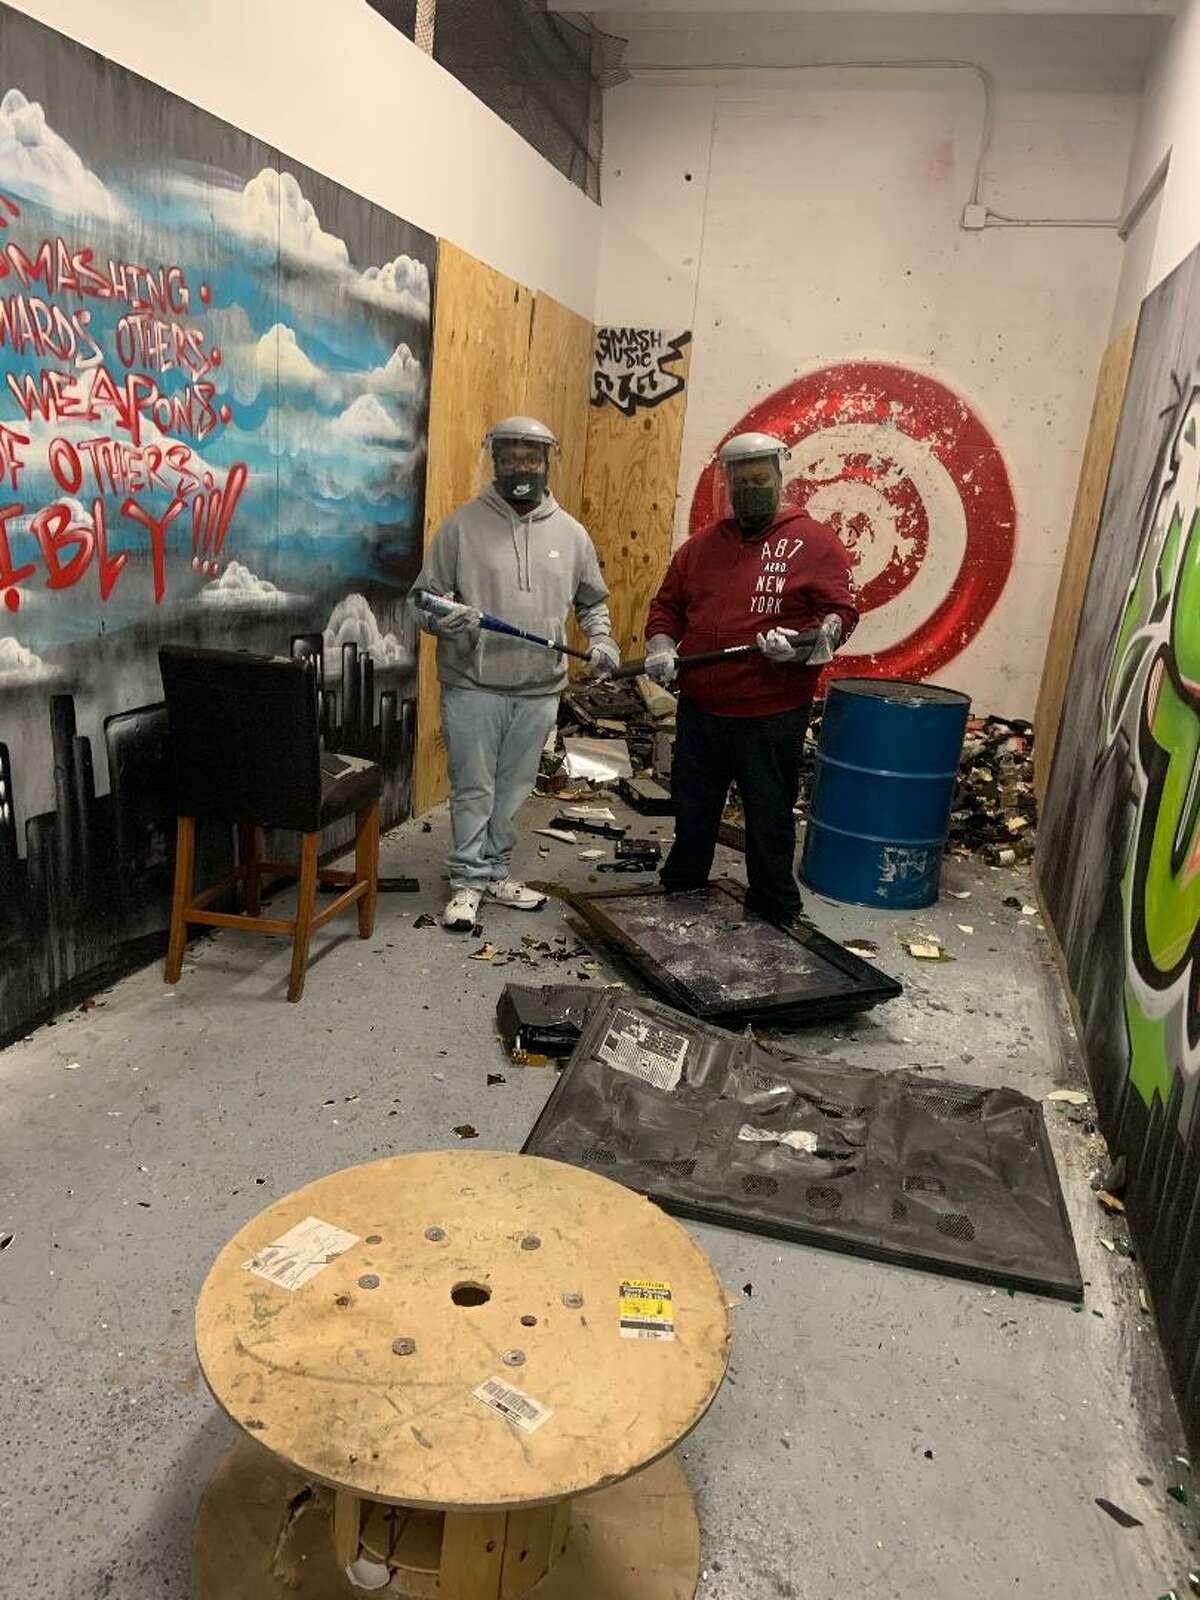 Smash Avenue in West Hartford allows customers to smash and destroy anything from electronics to furniture to plumbing fixtures. It began accepting customers on Nov. 5, 2020.